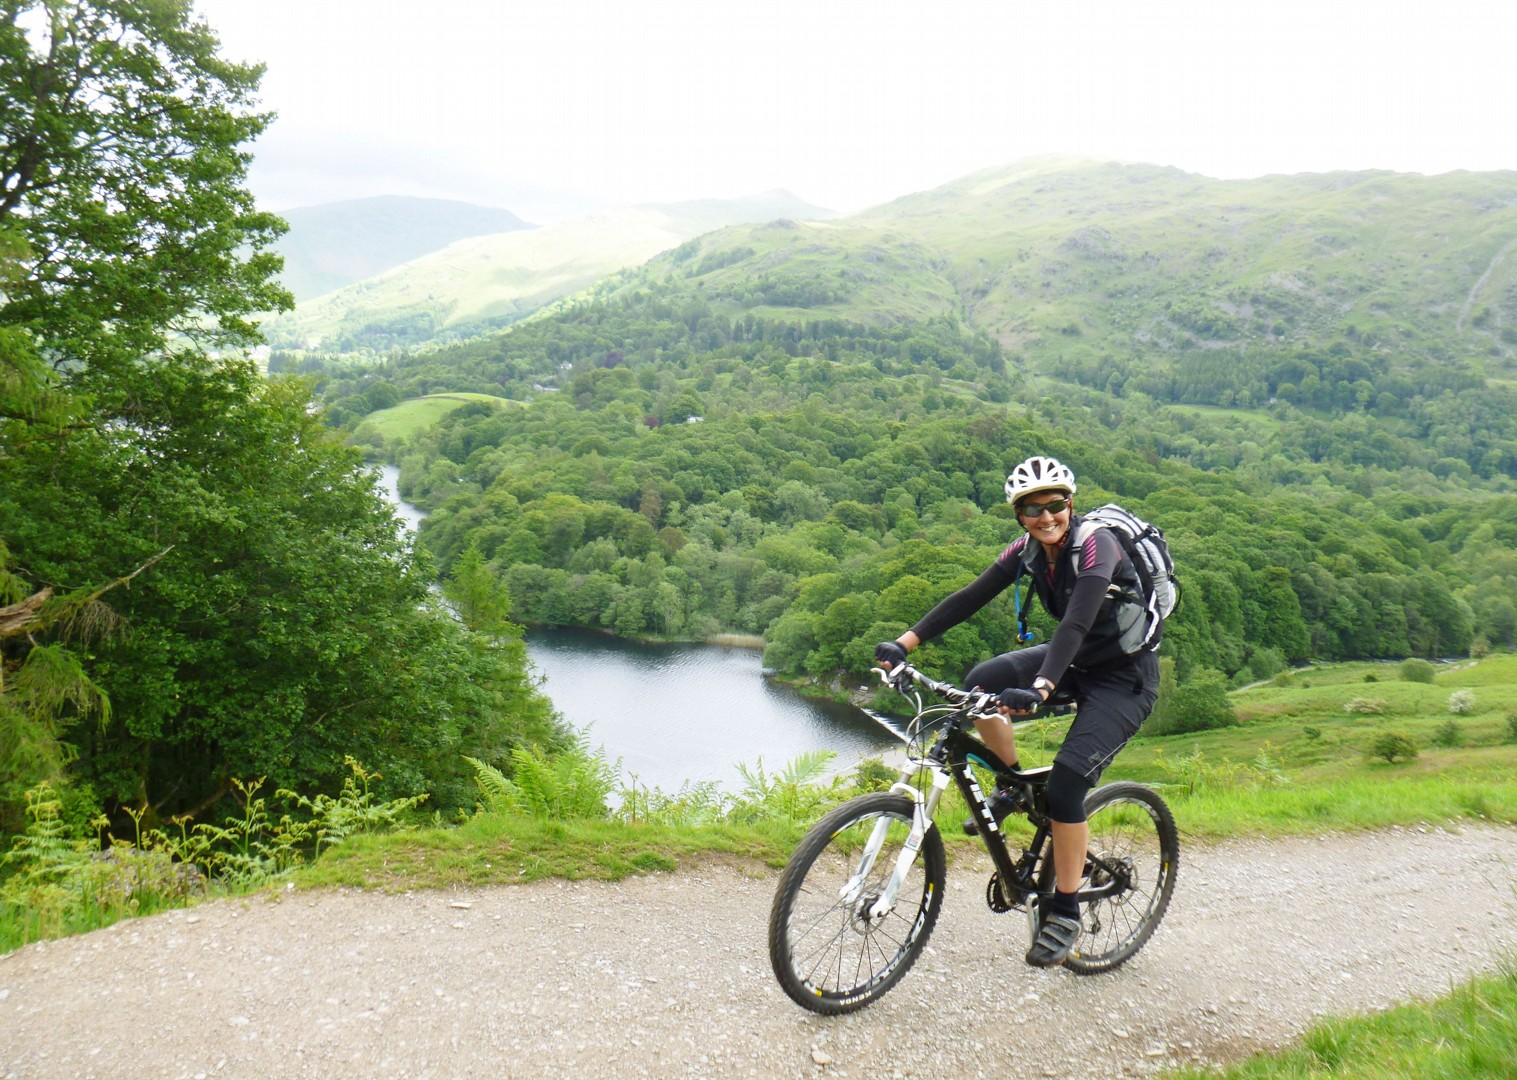 Mountain-Bike-Weekend-UK-Lake-District-Classic-Coniston-4.jpg - UK - Lake District - Classic Coniston - Guided Mountain Bike Weekend - Mountain Biking